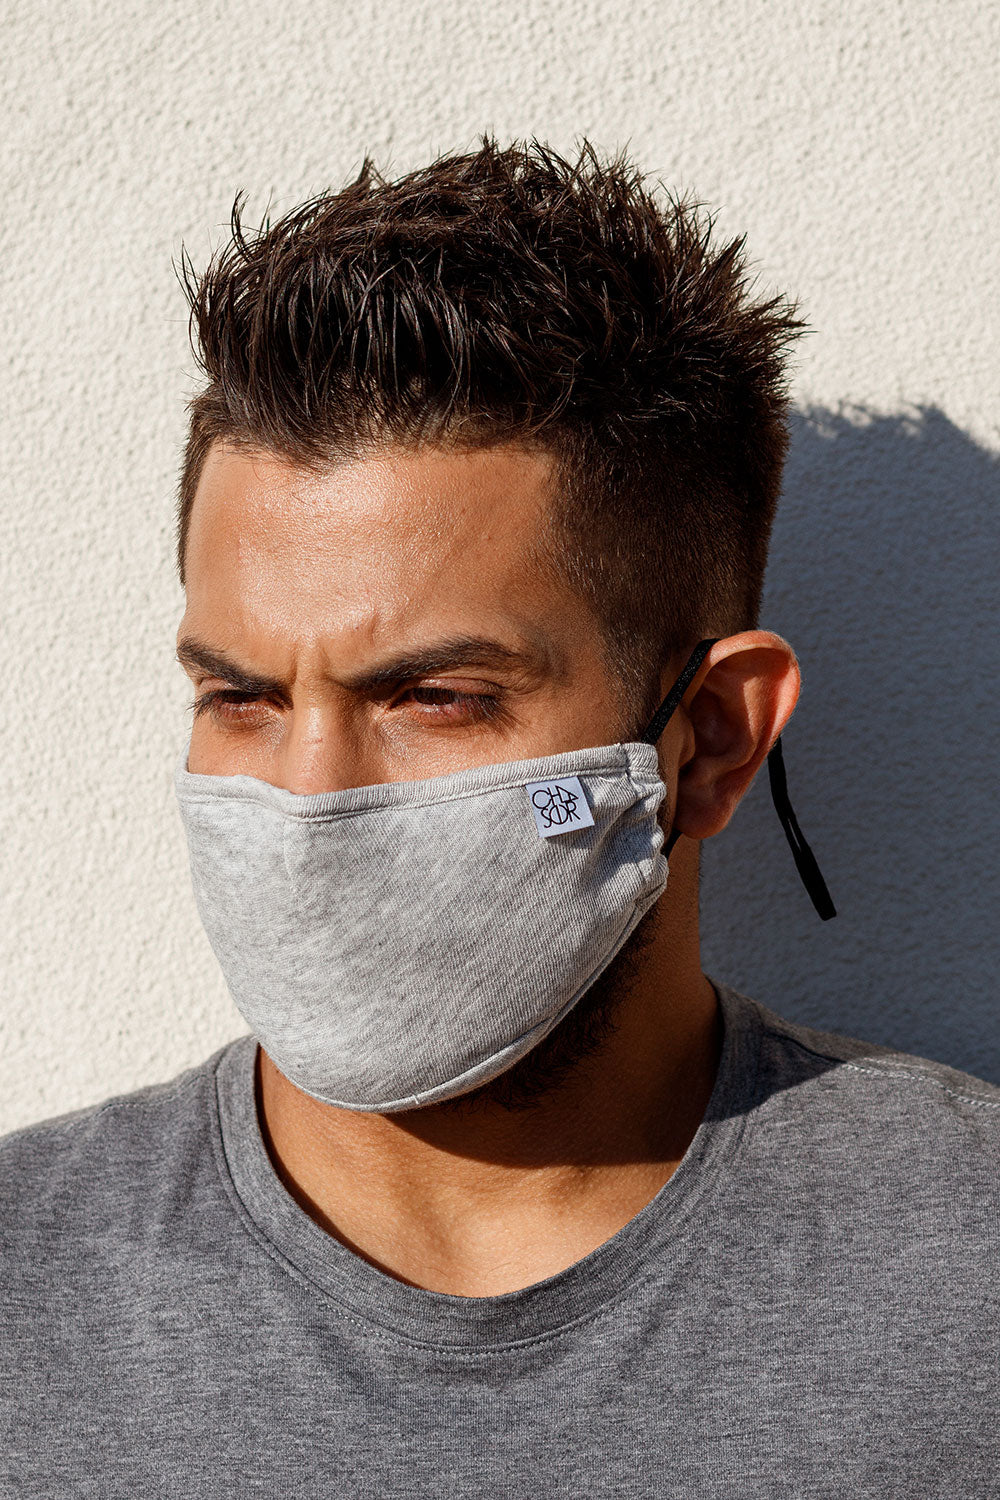 Unisex Solid Cotton Mask MASKS - chaserbrand